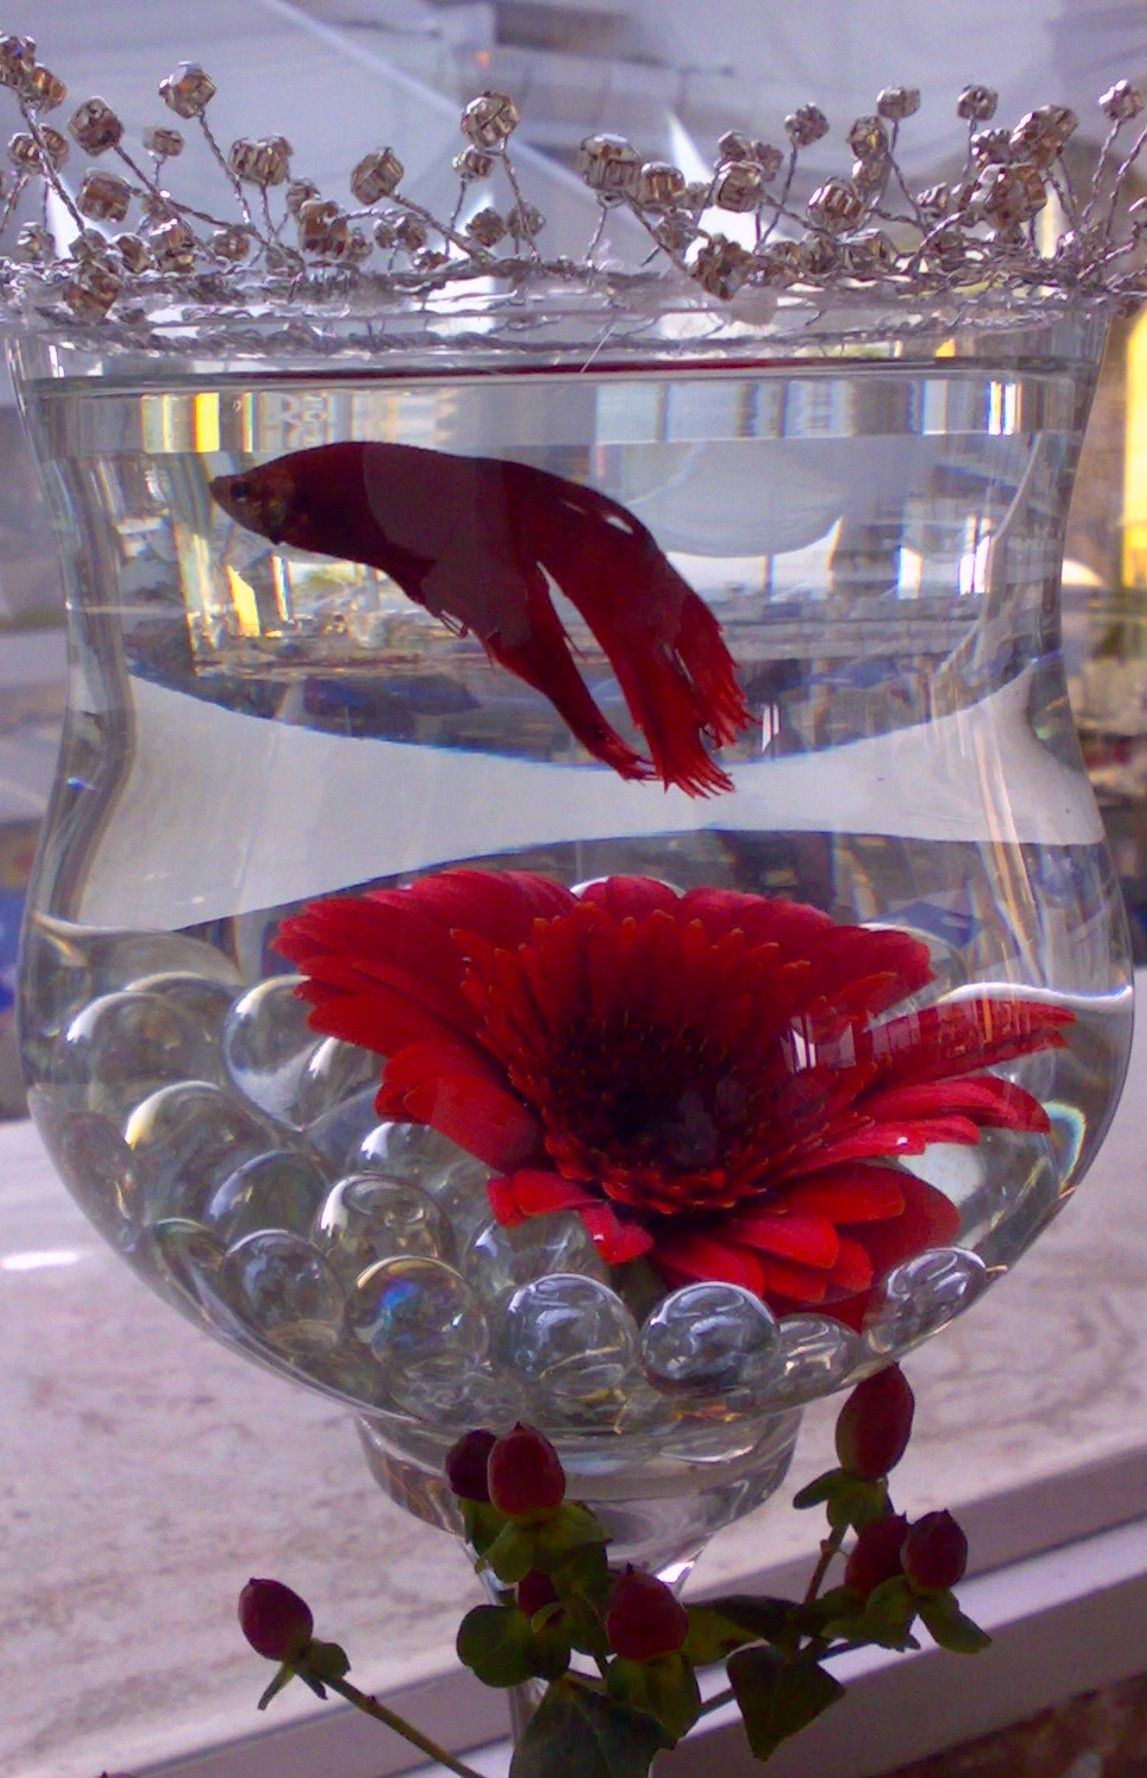 For Those Brides Who Want A Totally Different Touch Siamese Fighting Fish In A Large Wine Vase Wi Fish Centerpiece Wedding Centerpieces Beta Fish Centerpiece